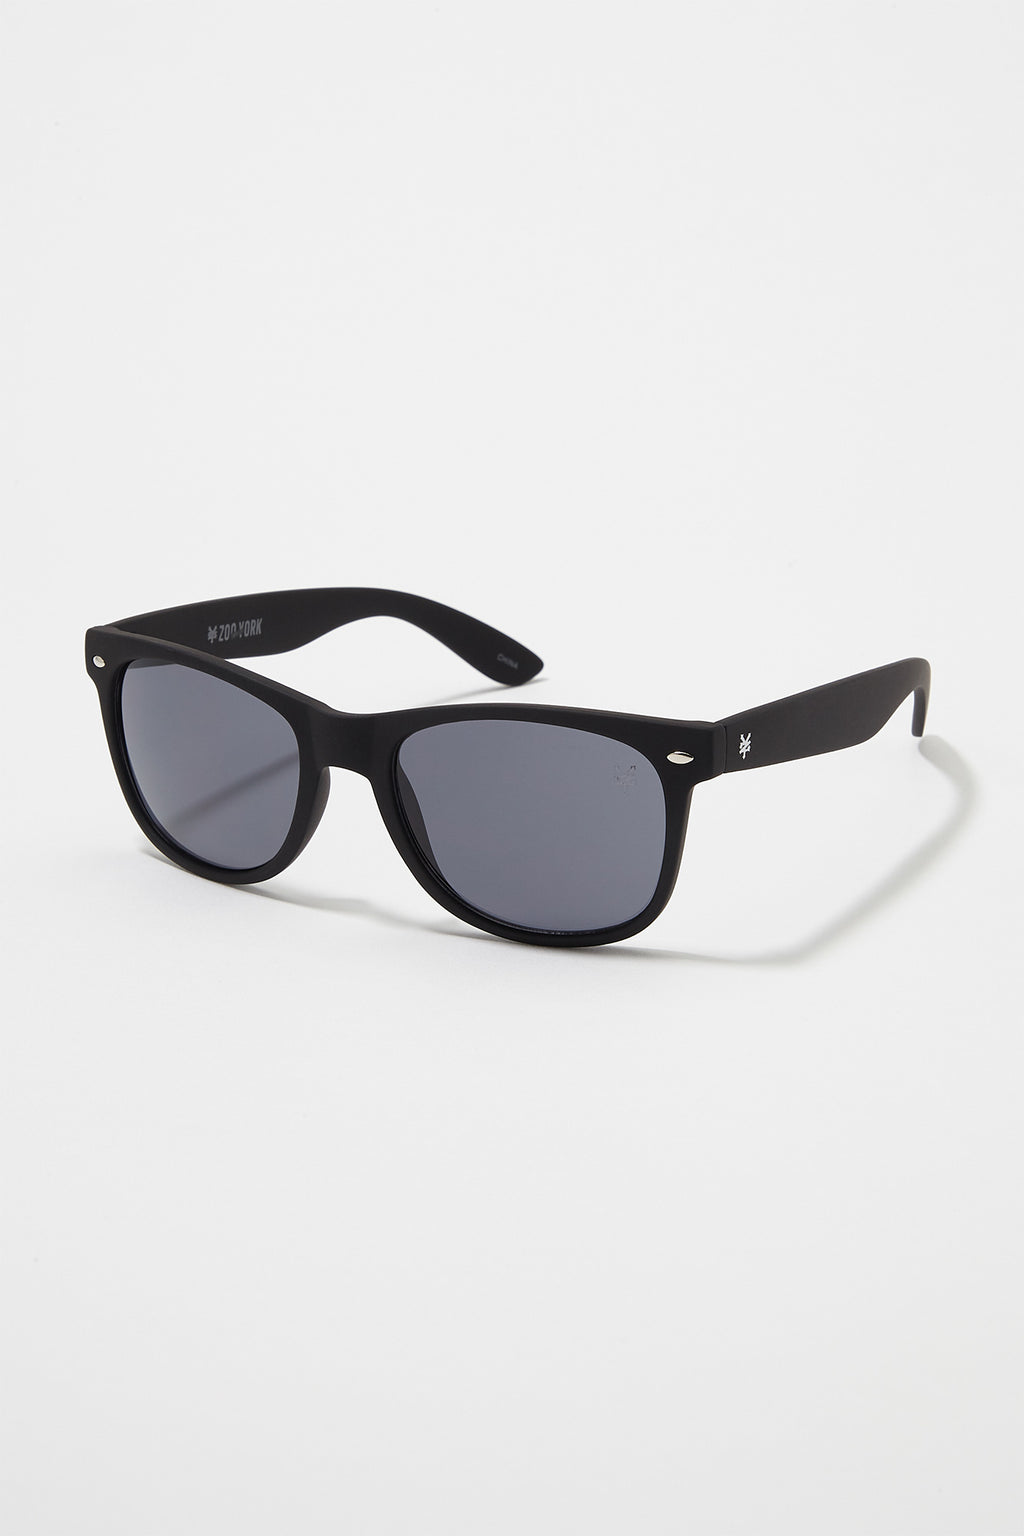 Zoo York Mens Square Sunglasses